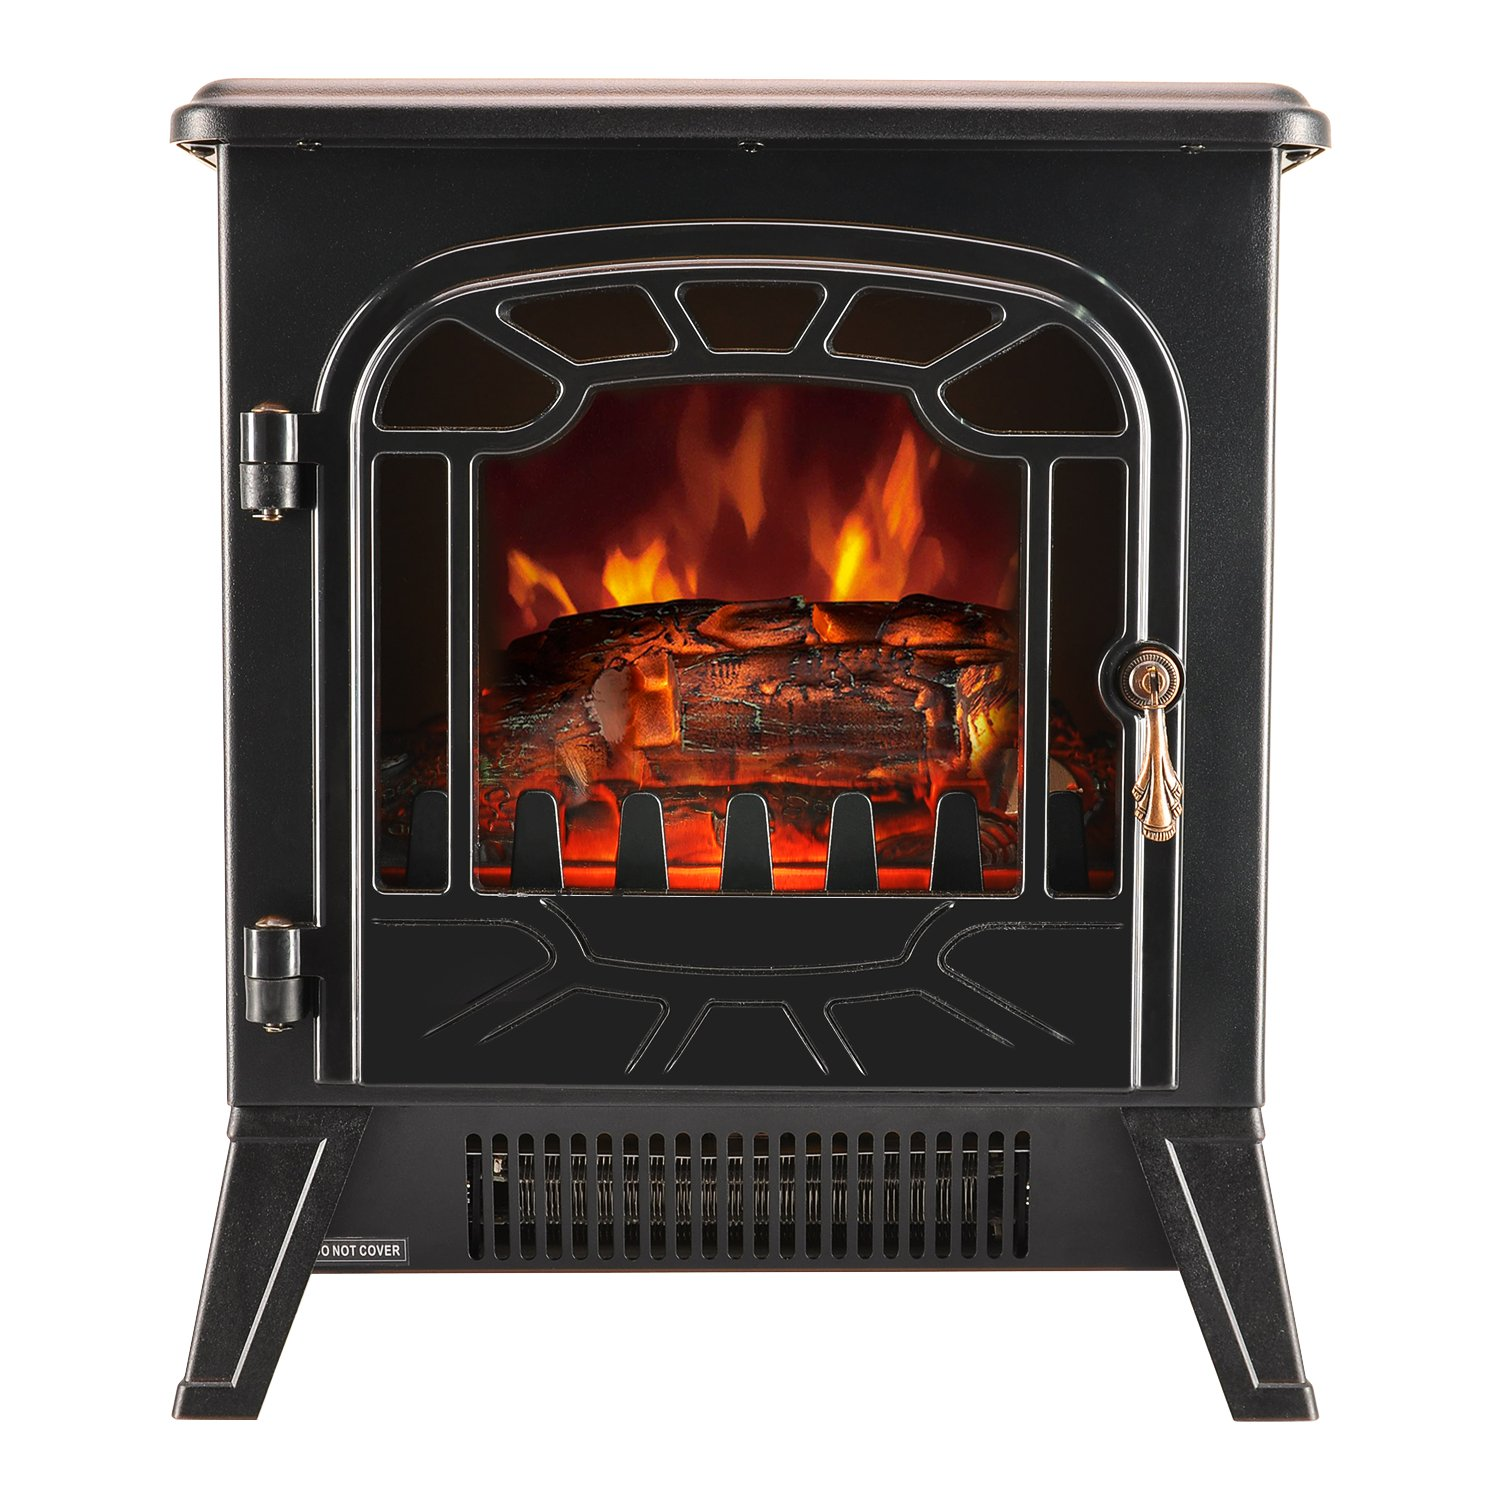 MODERN LIFE Electric Fireplace 1850W Portable Stove Heater Log Burning Flame Effect with Adjustable Thermostat